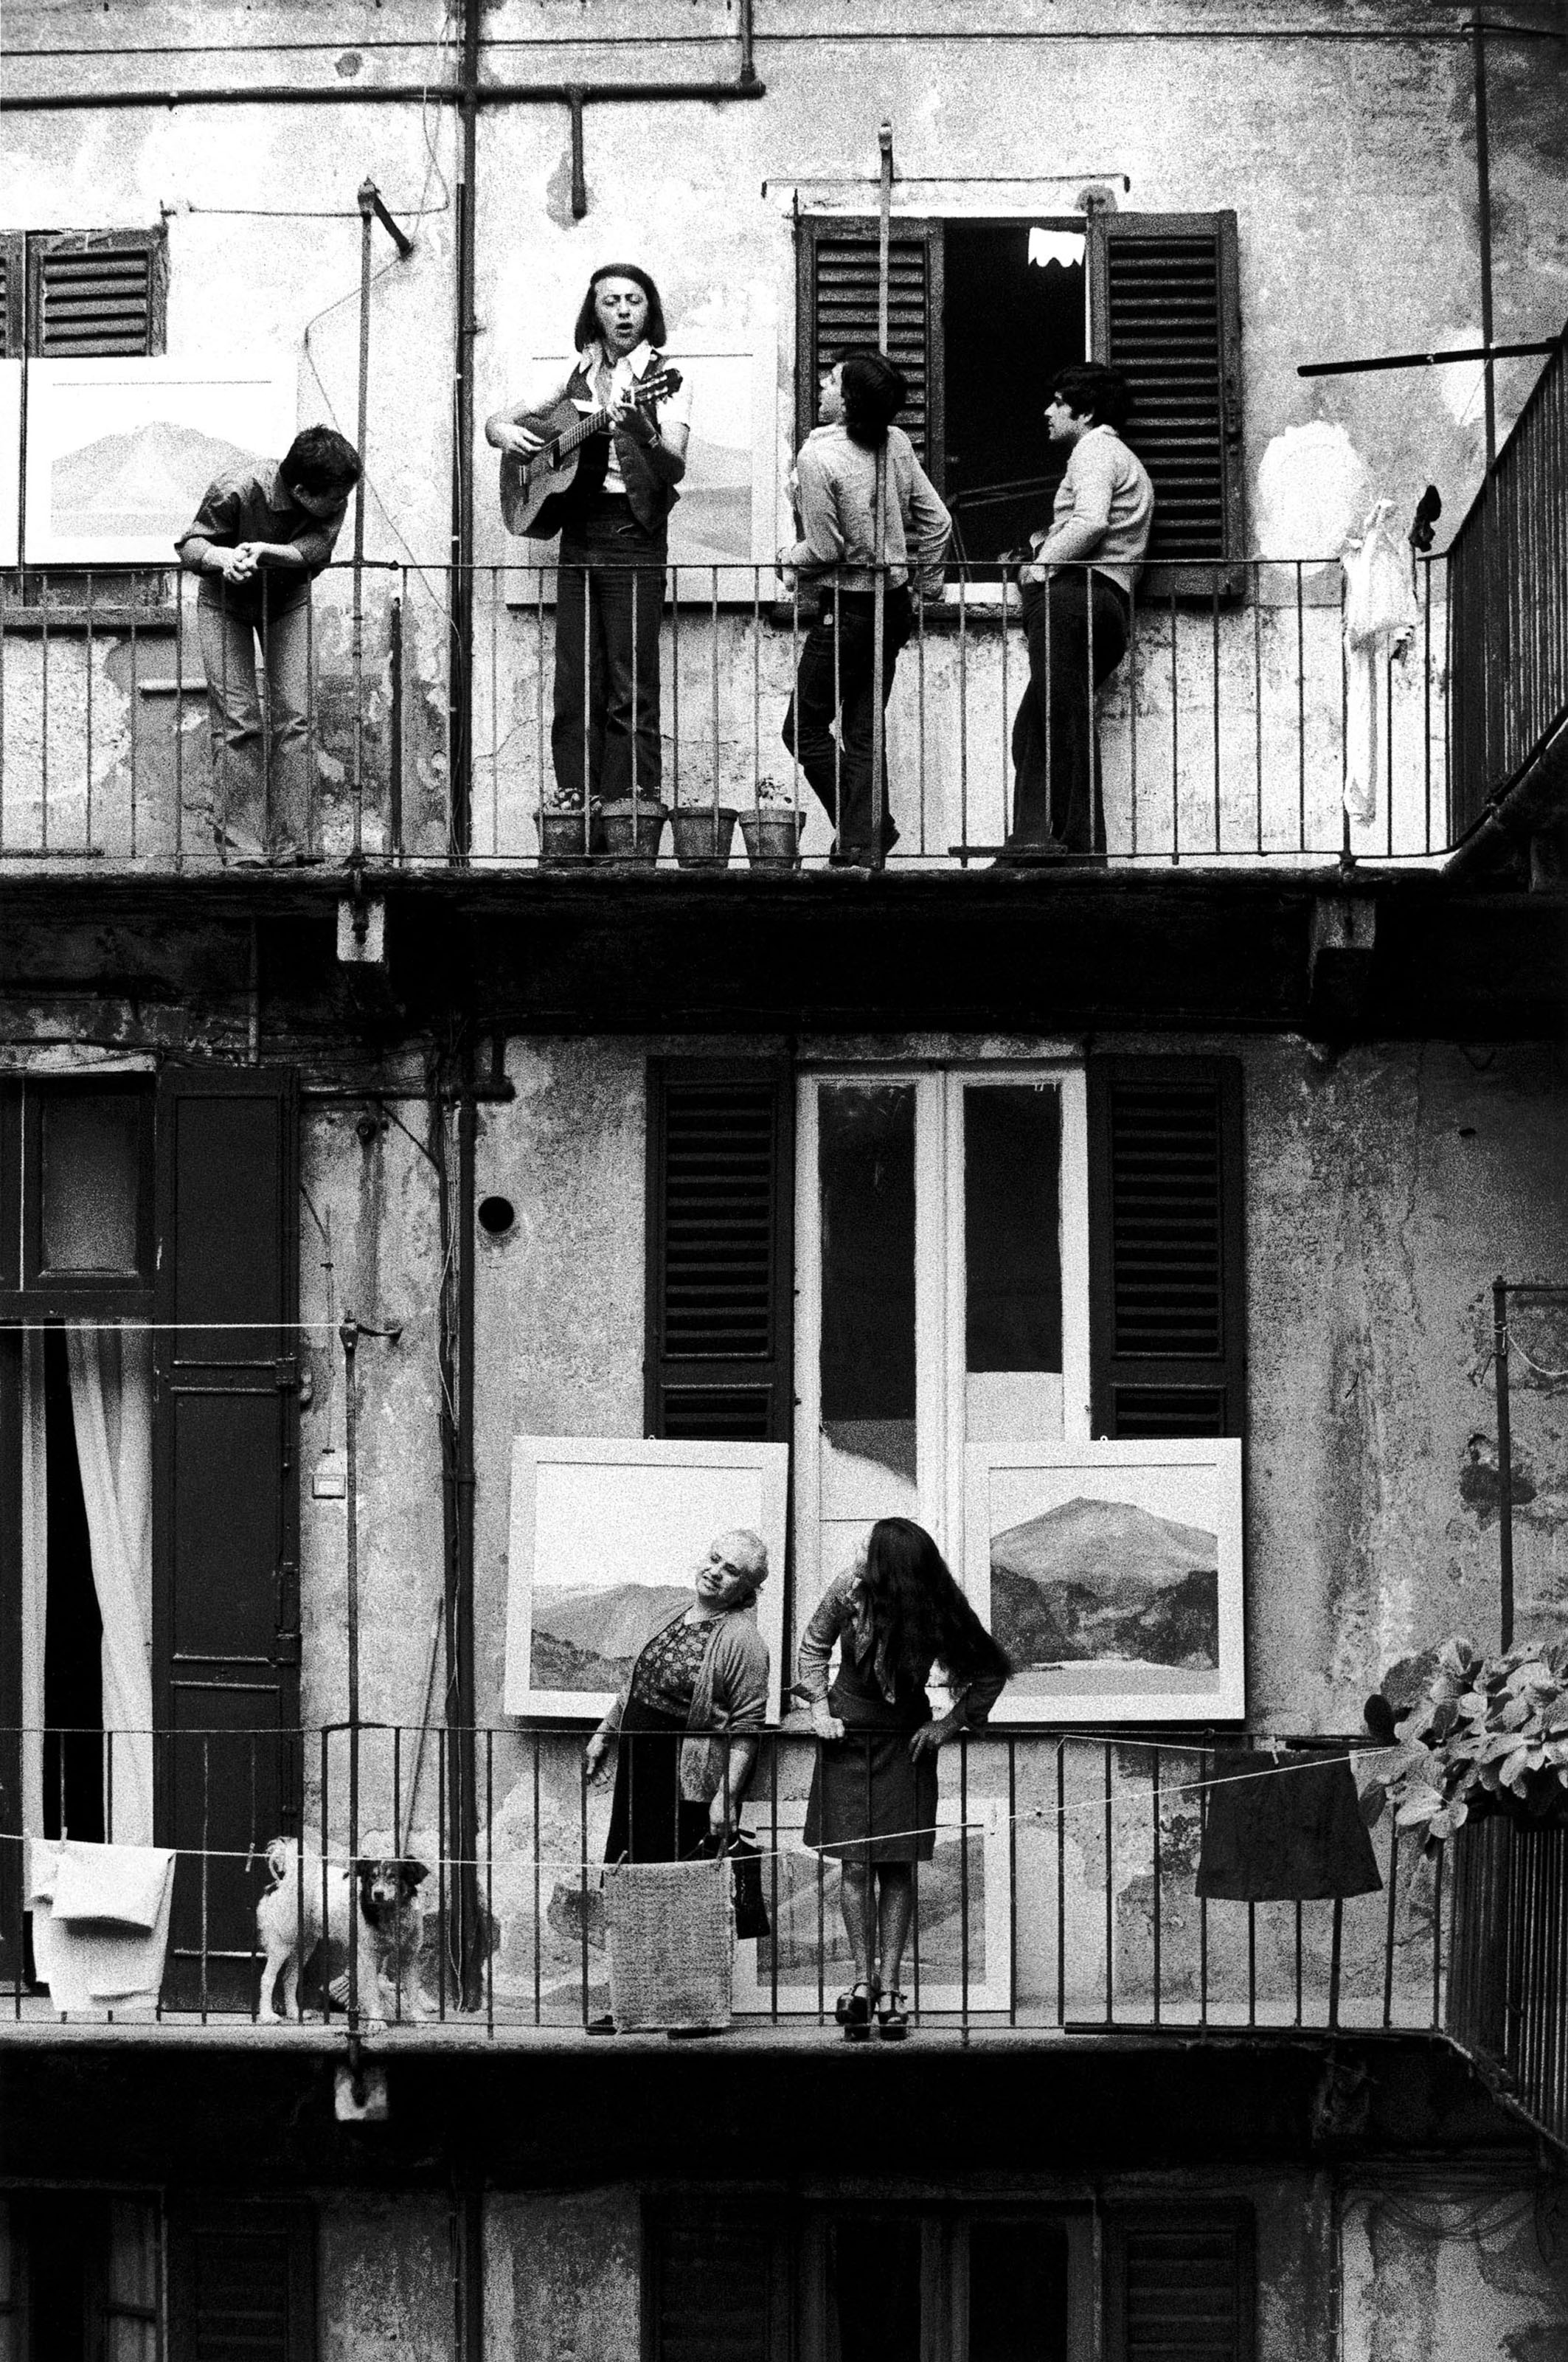 Mostra People and the City - Berengo Gardin